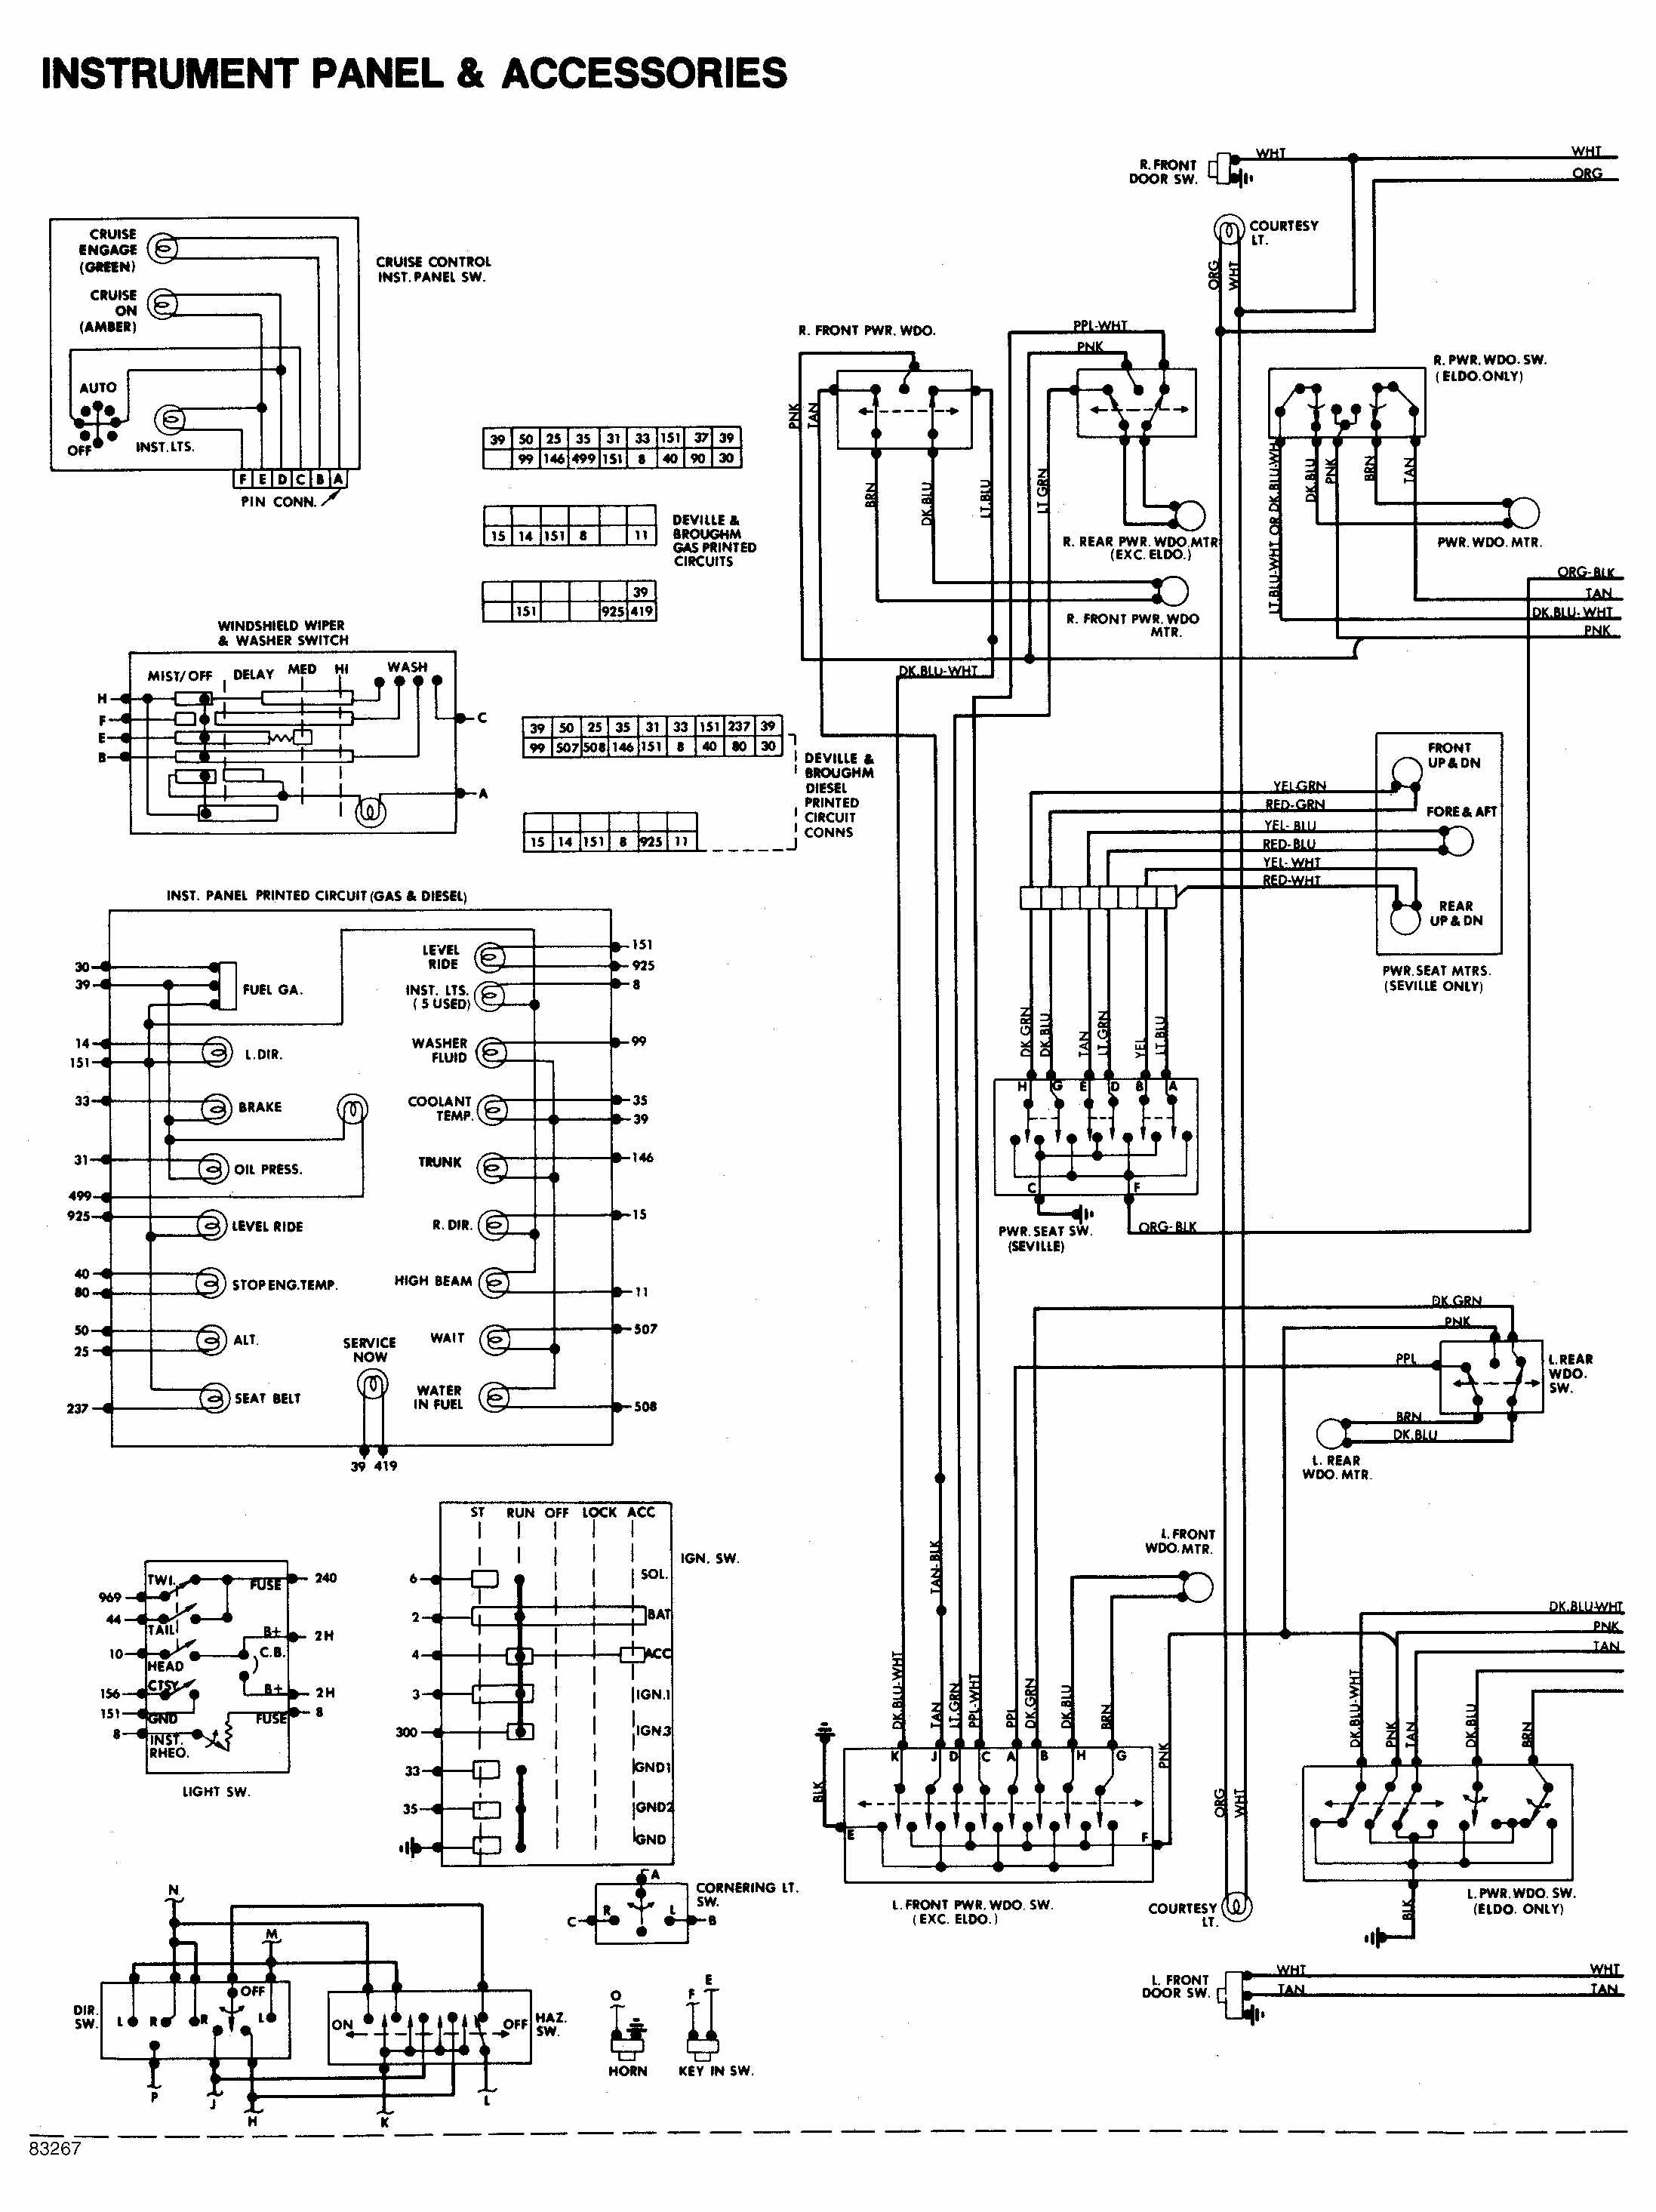 instrument panel and accessories wiring diagram of 1984 cadillac deville 2001 cadillac eldorado wiring harness 2001 wirning diagrams 2005 cadillac deville wiring diagram at edmiracle.co